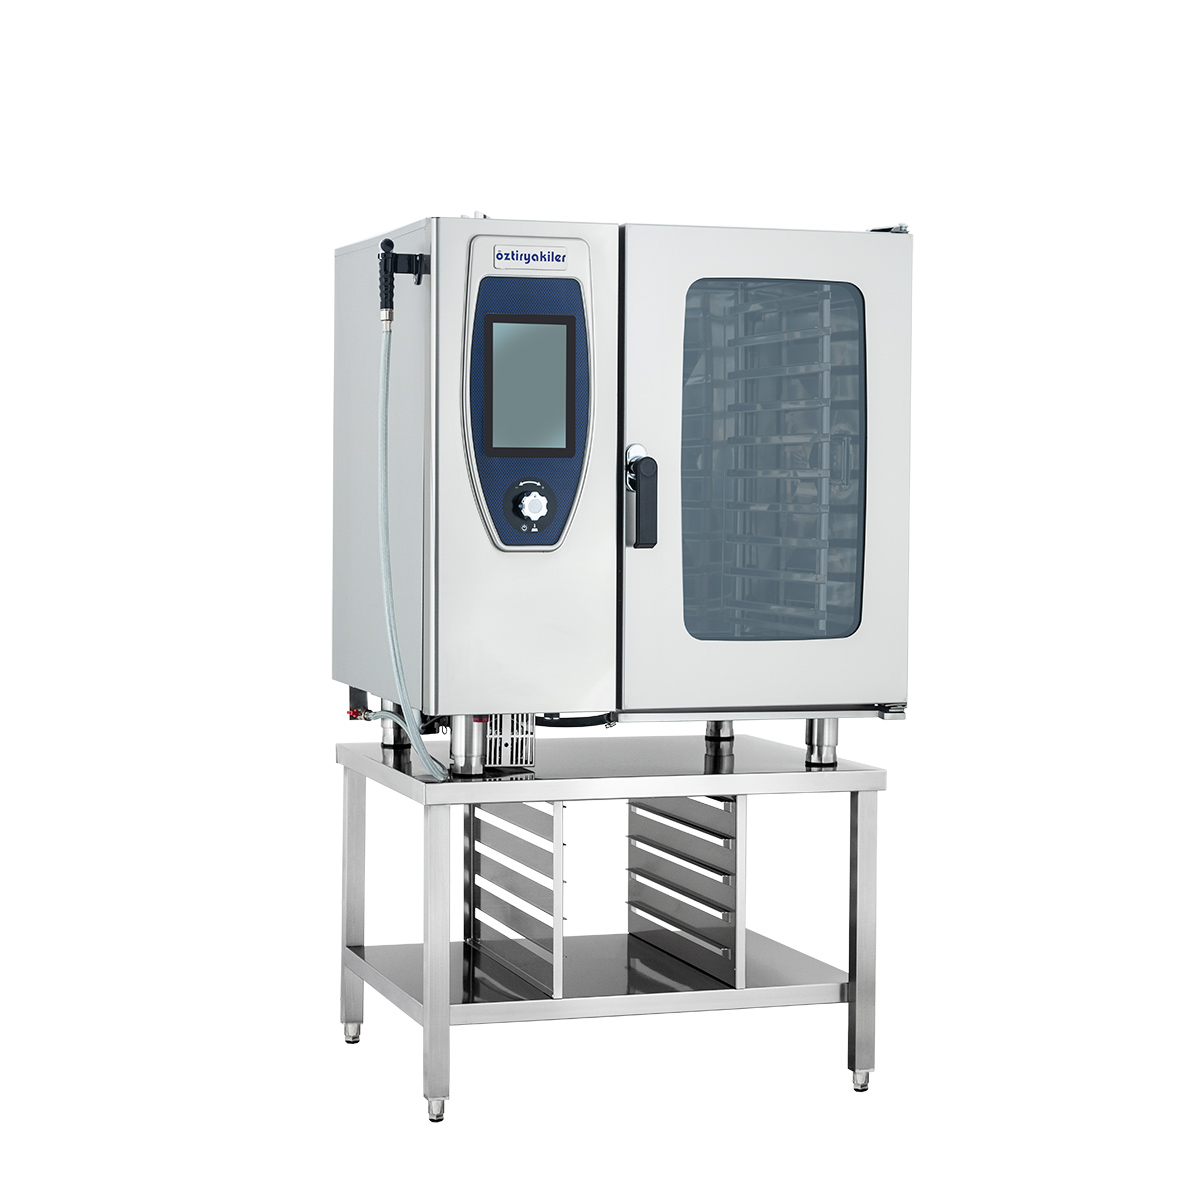 Combi Oven Gas - 101 (10 x GN 1/1)